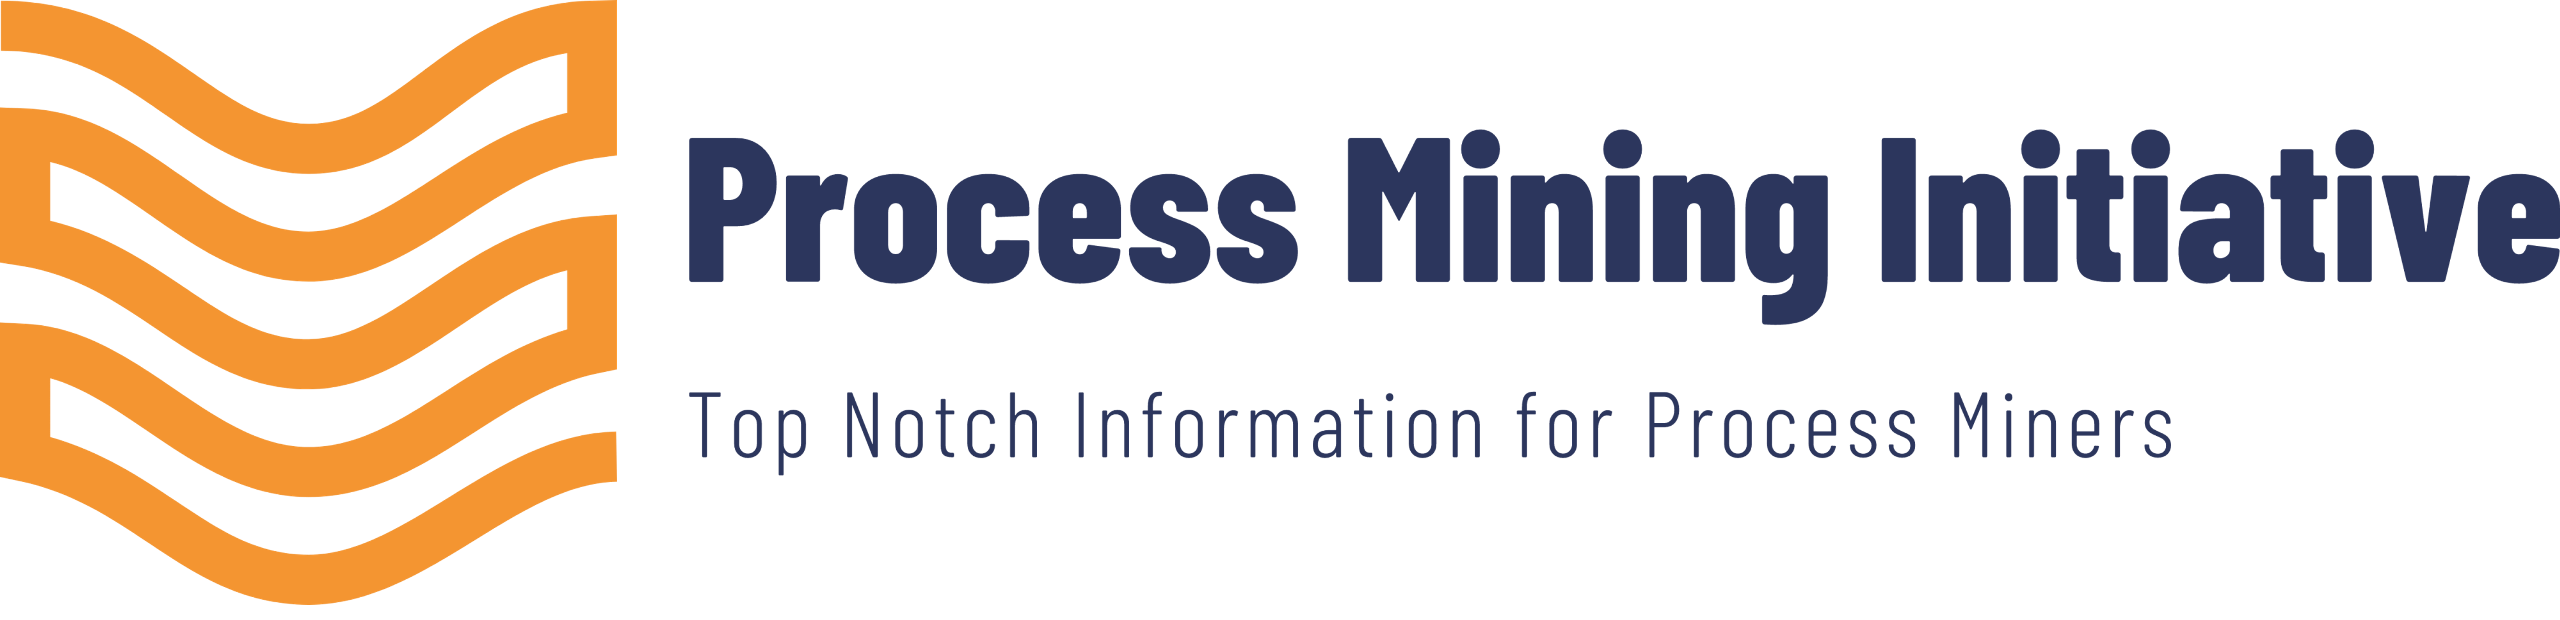 PROCESS MINING INITIATIVE – プロセスマイニング・イニシアティブ